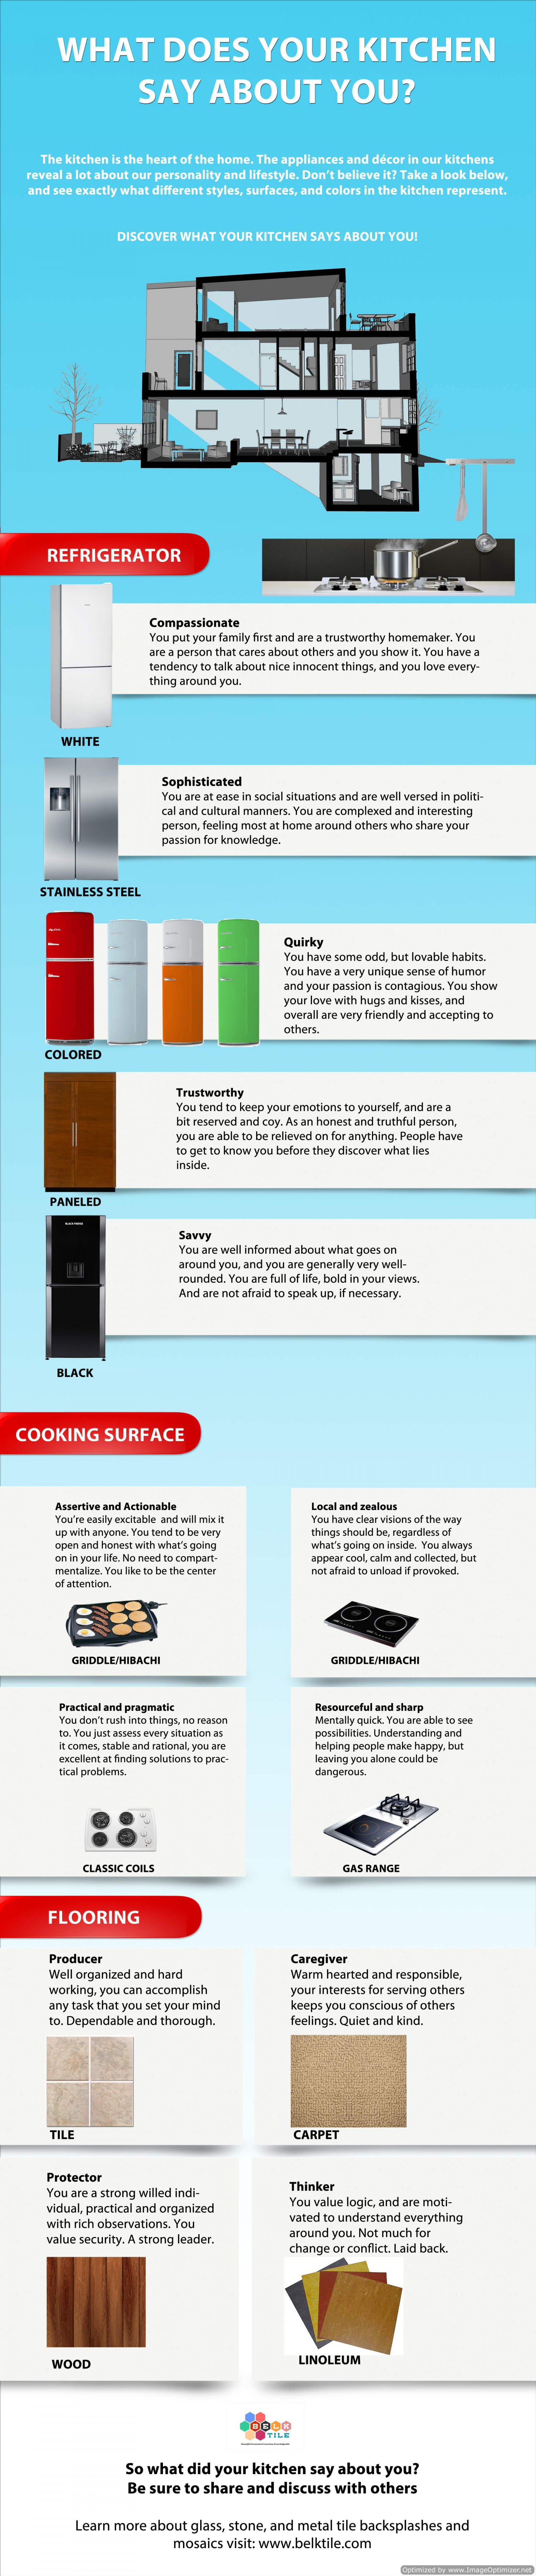 What does your kitchen say about you? Infographic